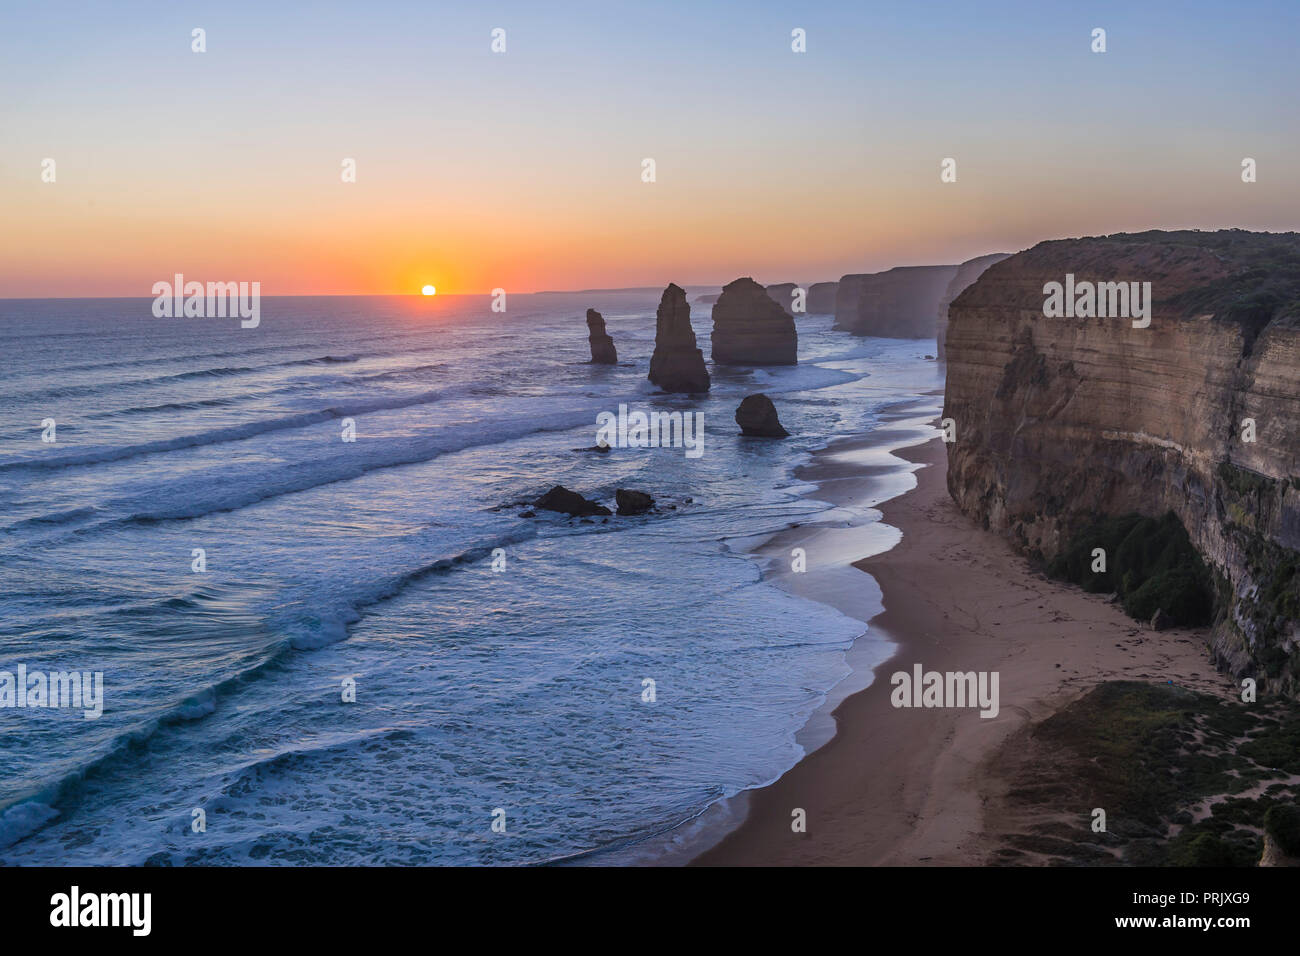 The setting Sun at the Twelve Apostles sea stacks and cliffs on the Great Ocean Road, on April 12, 2017.   This is an HDR stack of 7 exposures from lo - Stock Image